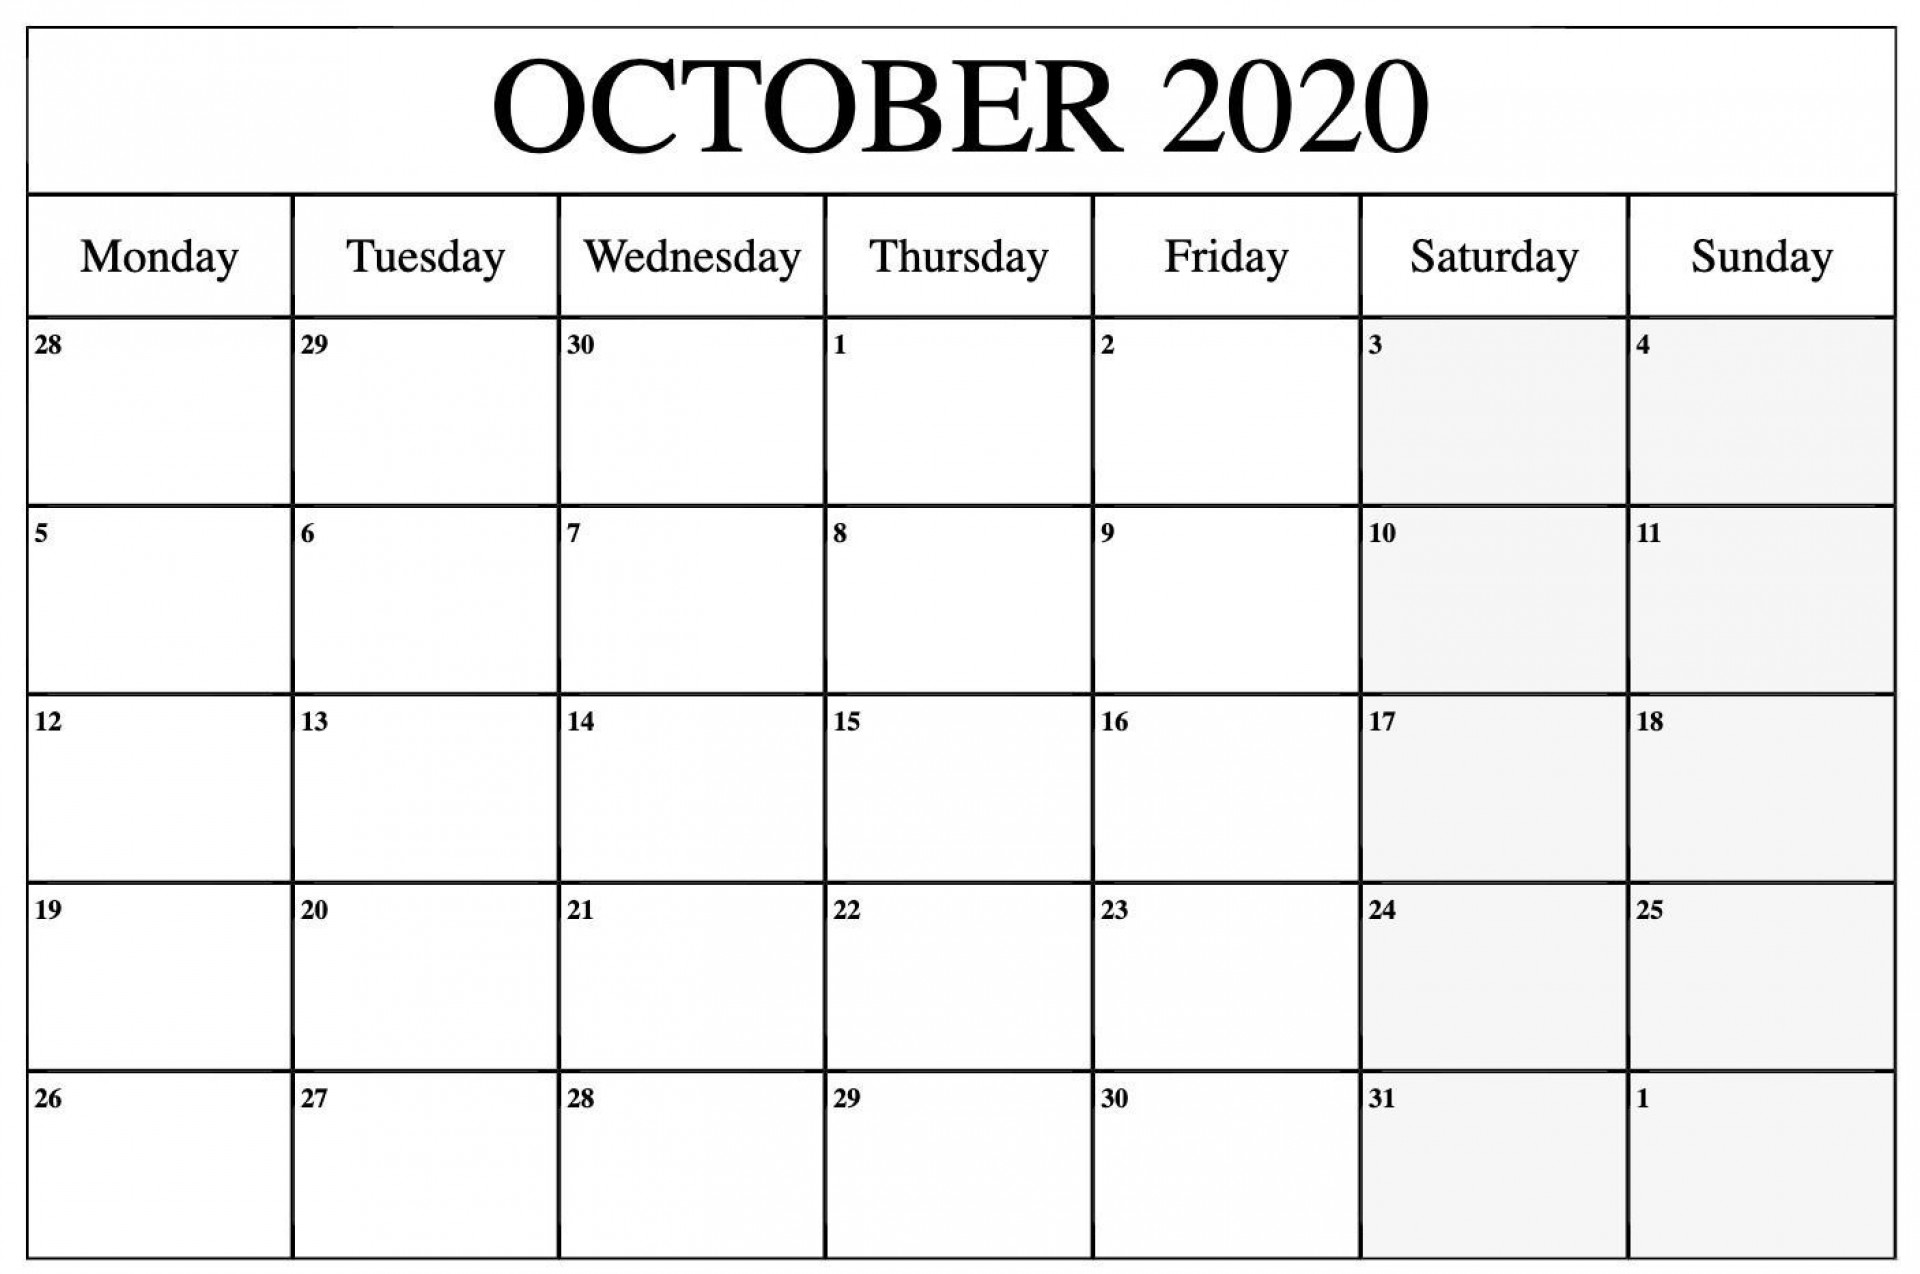 000 Formidable 2020 Calendar Template Excel Image  Microsoft Editable In Format Free Download1920